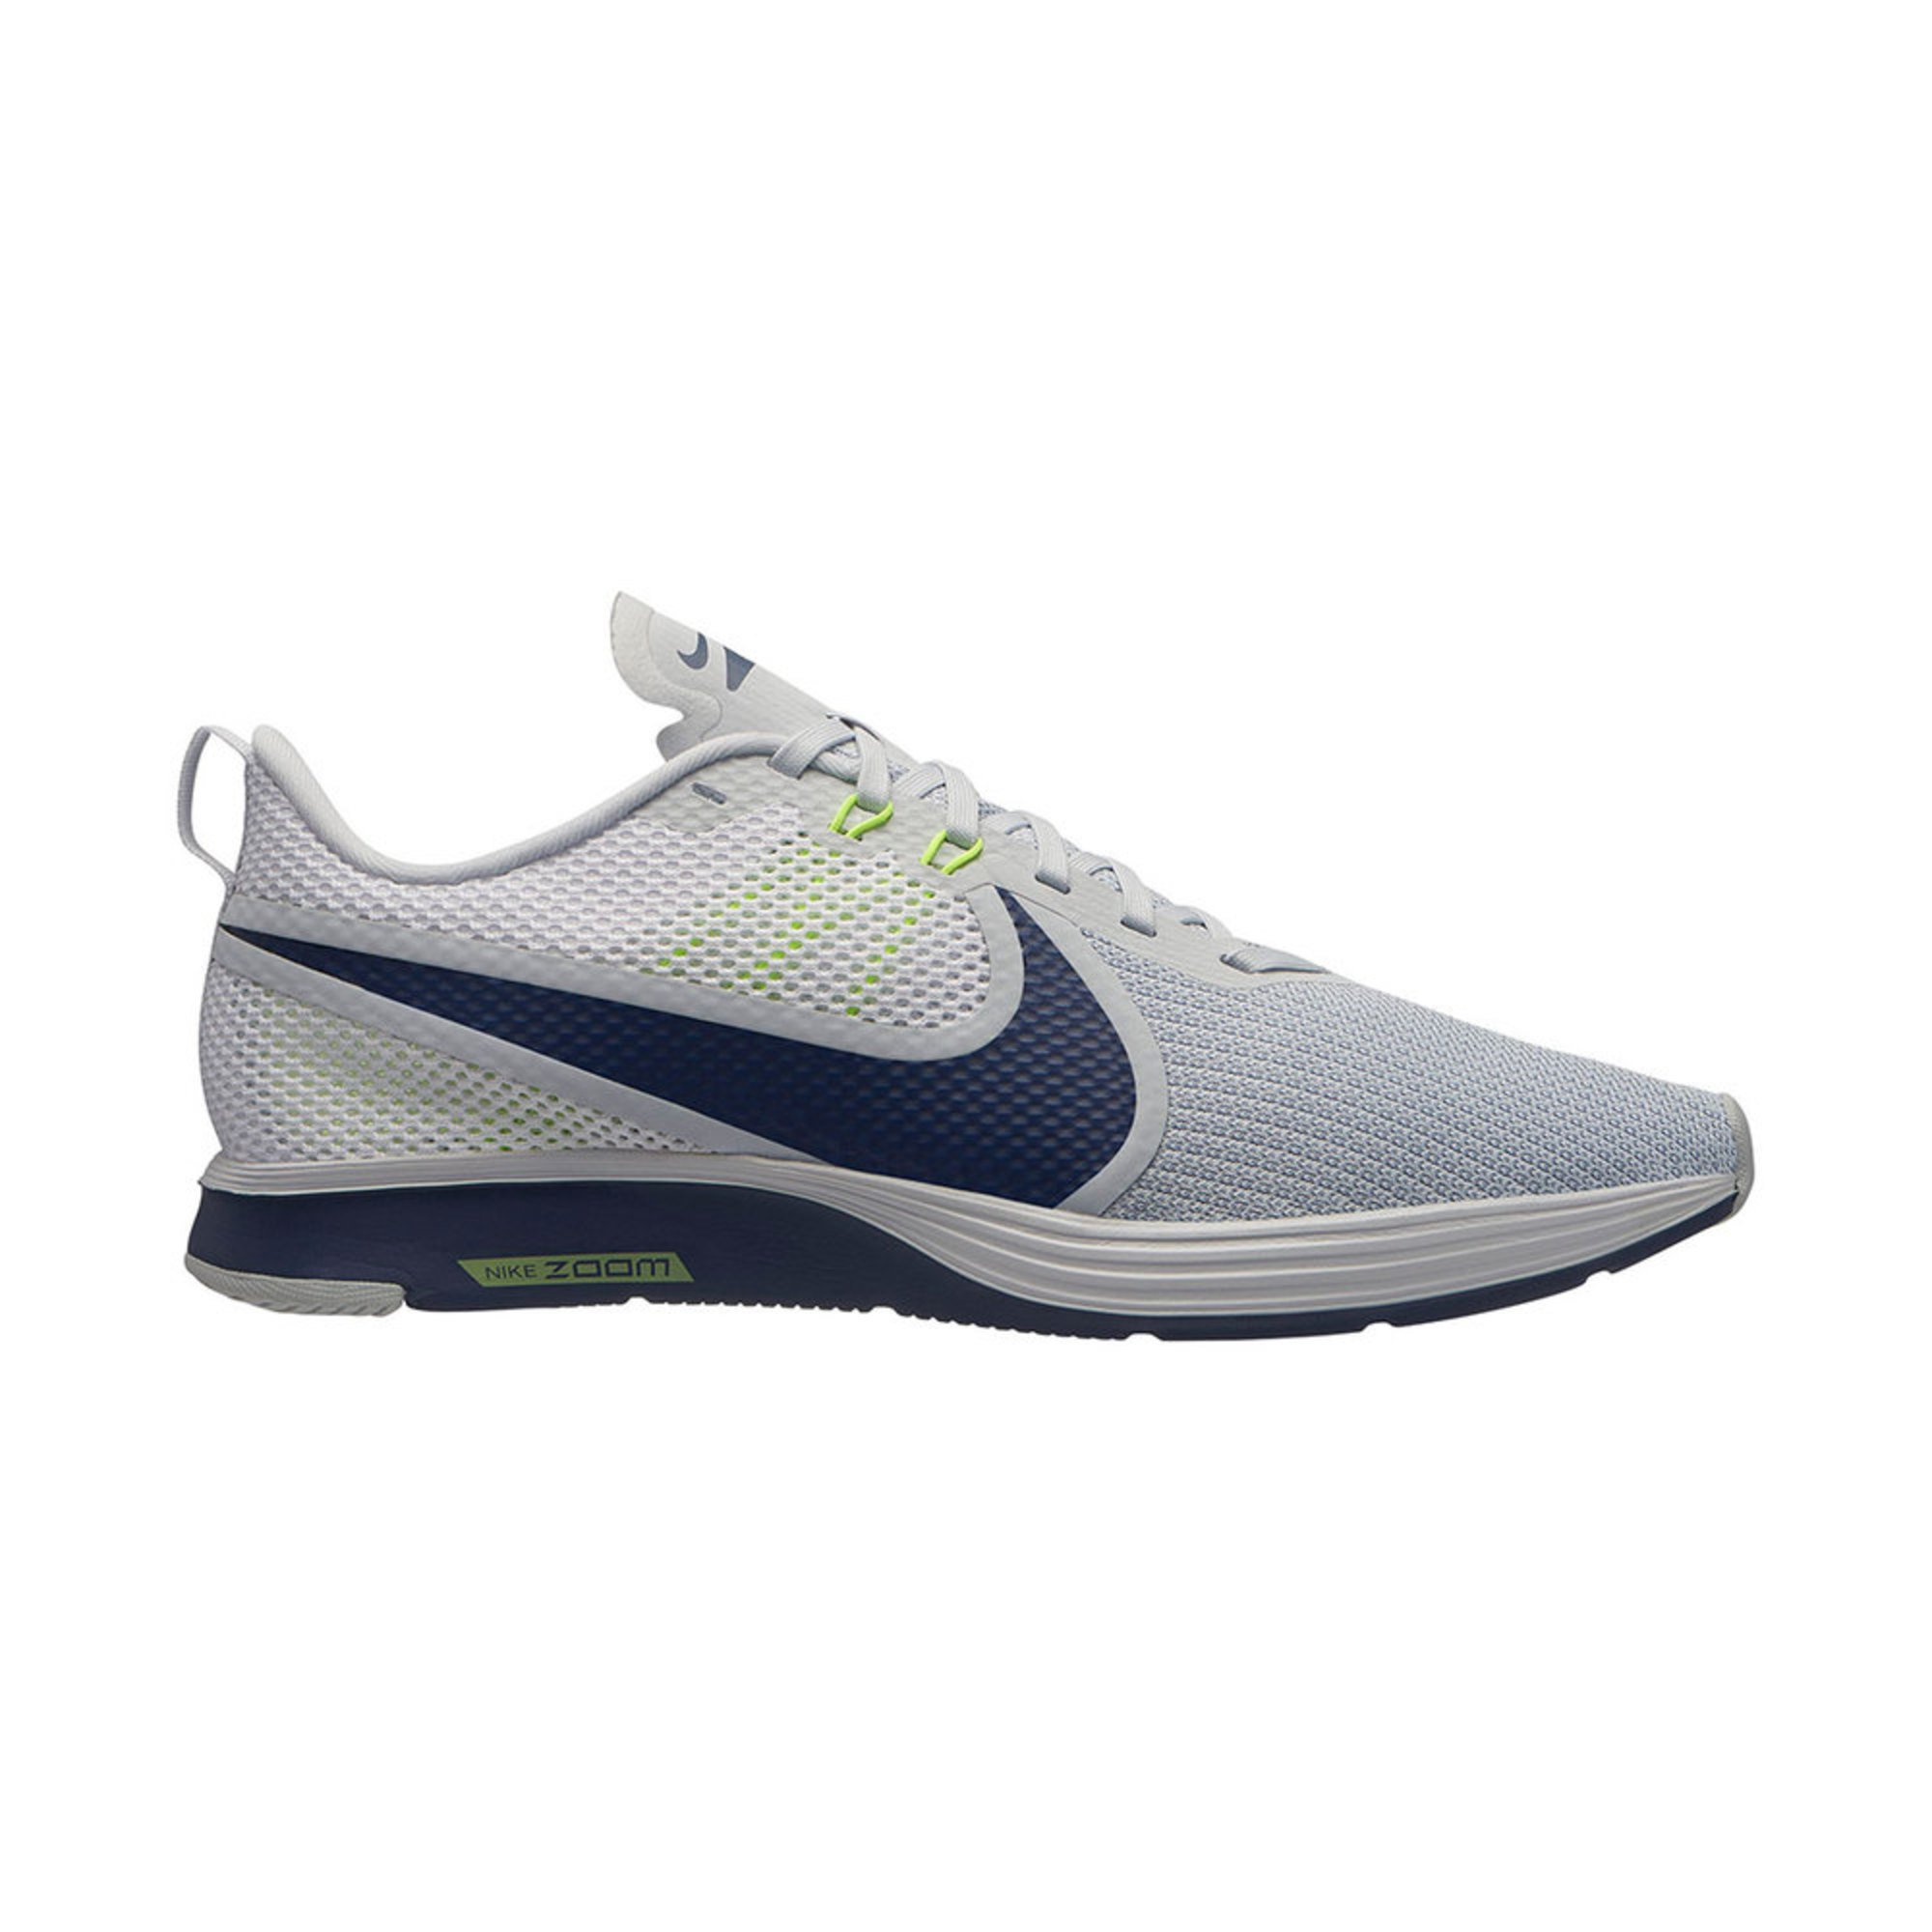 8830e02603be Nike. Nike Men s Zoom Strike 2 Running Shoe